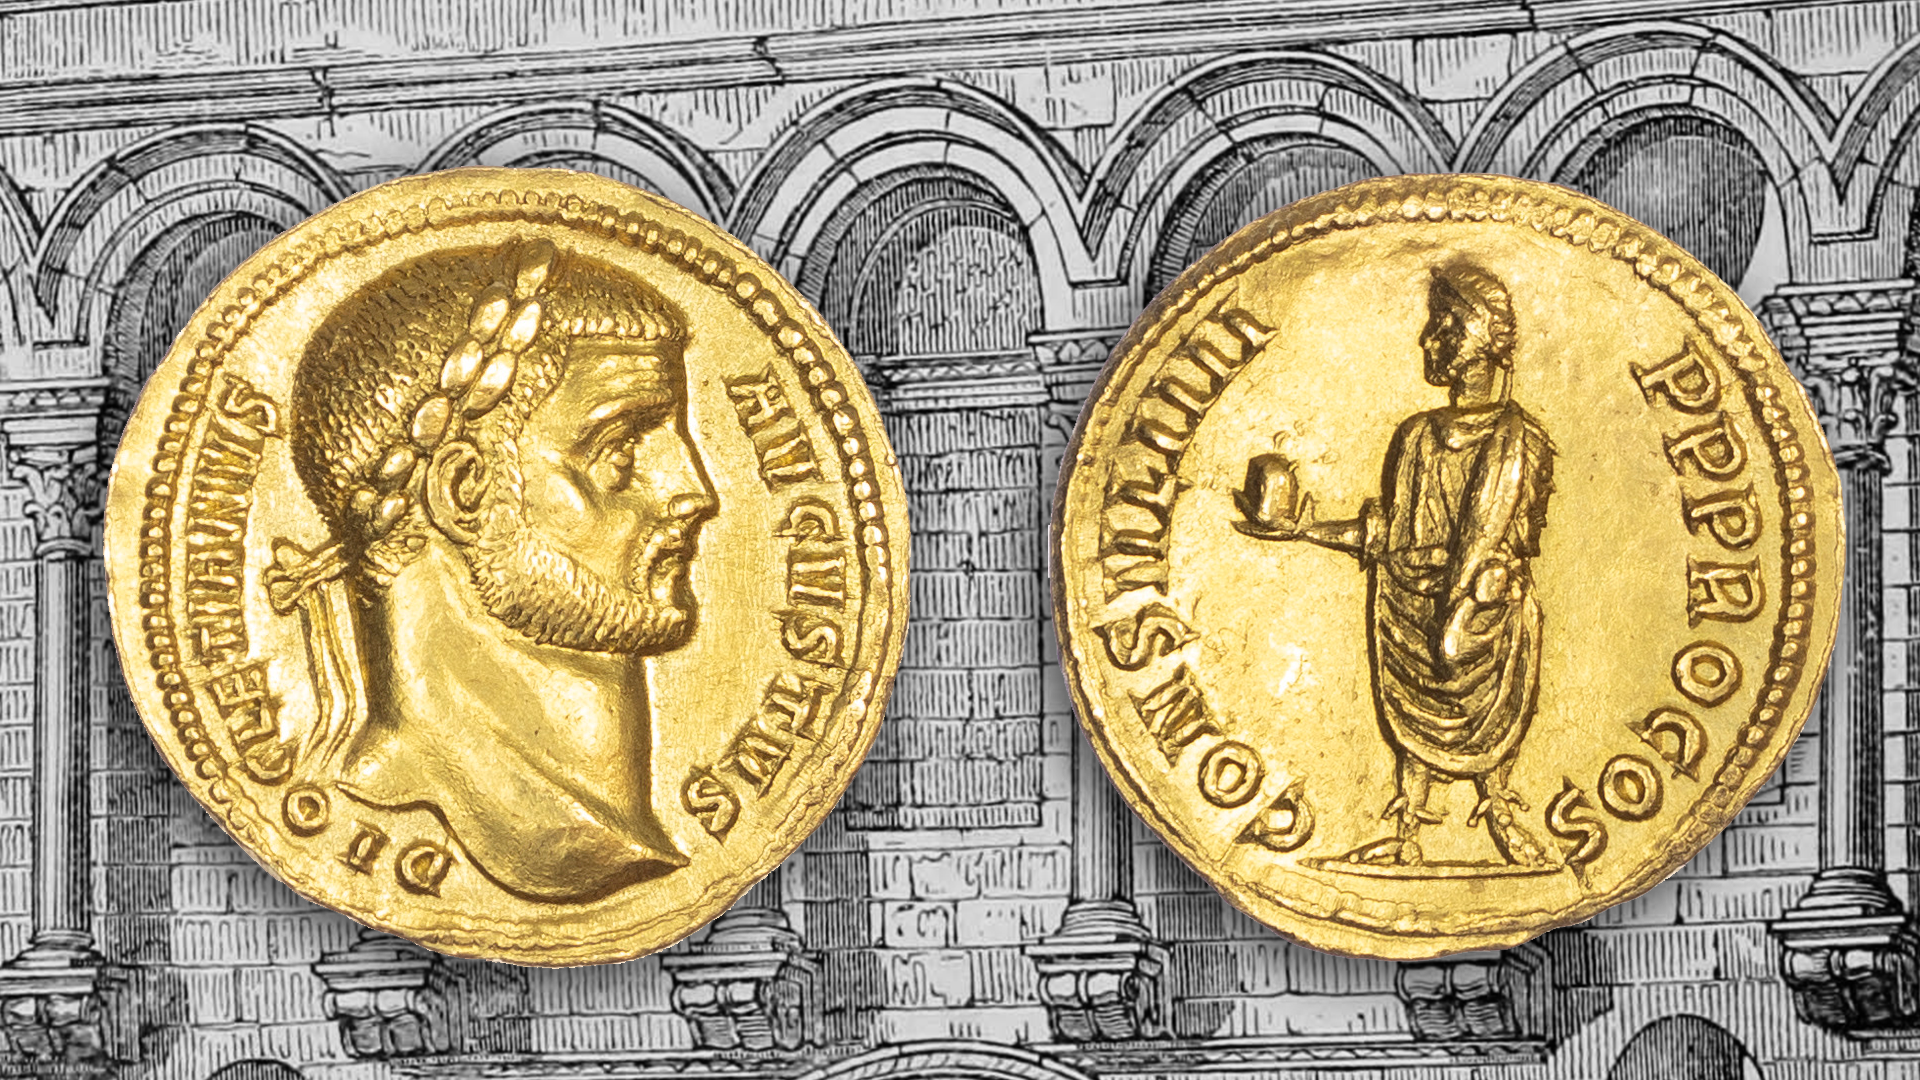 The Gold Aureus of Diocletian with a 19th Century engraving depicting the façade of Diocletian's Palace in Split, Croatia.